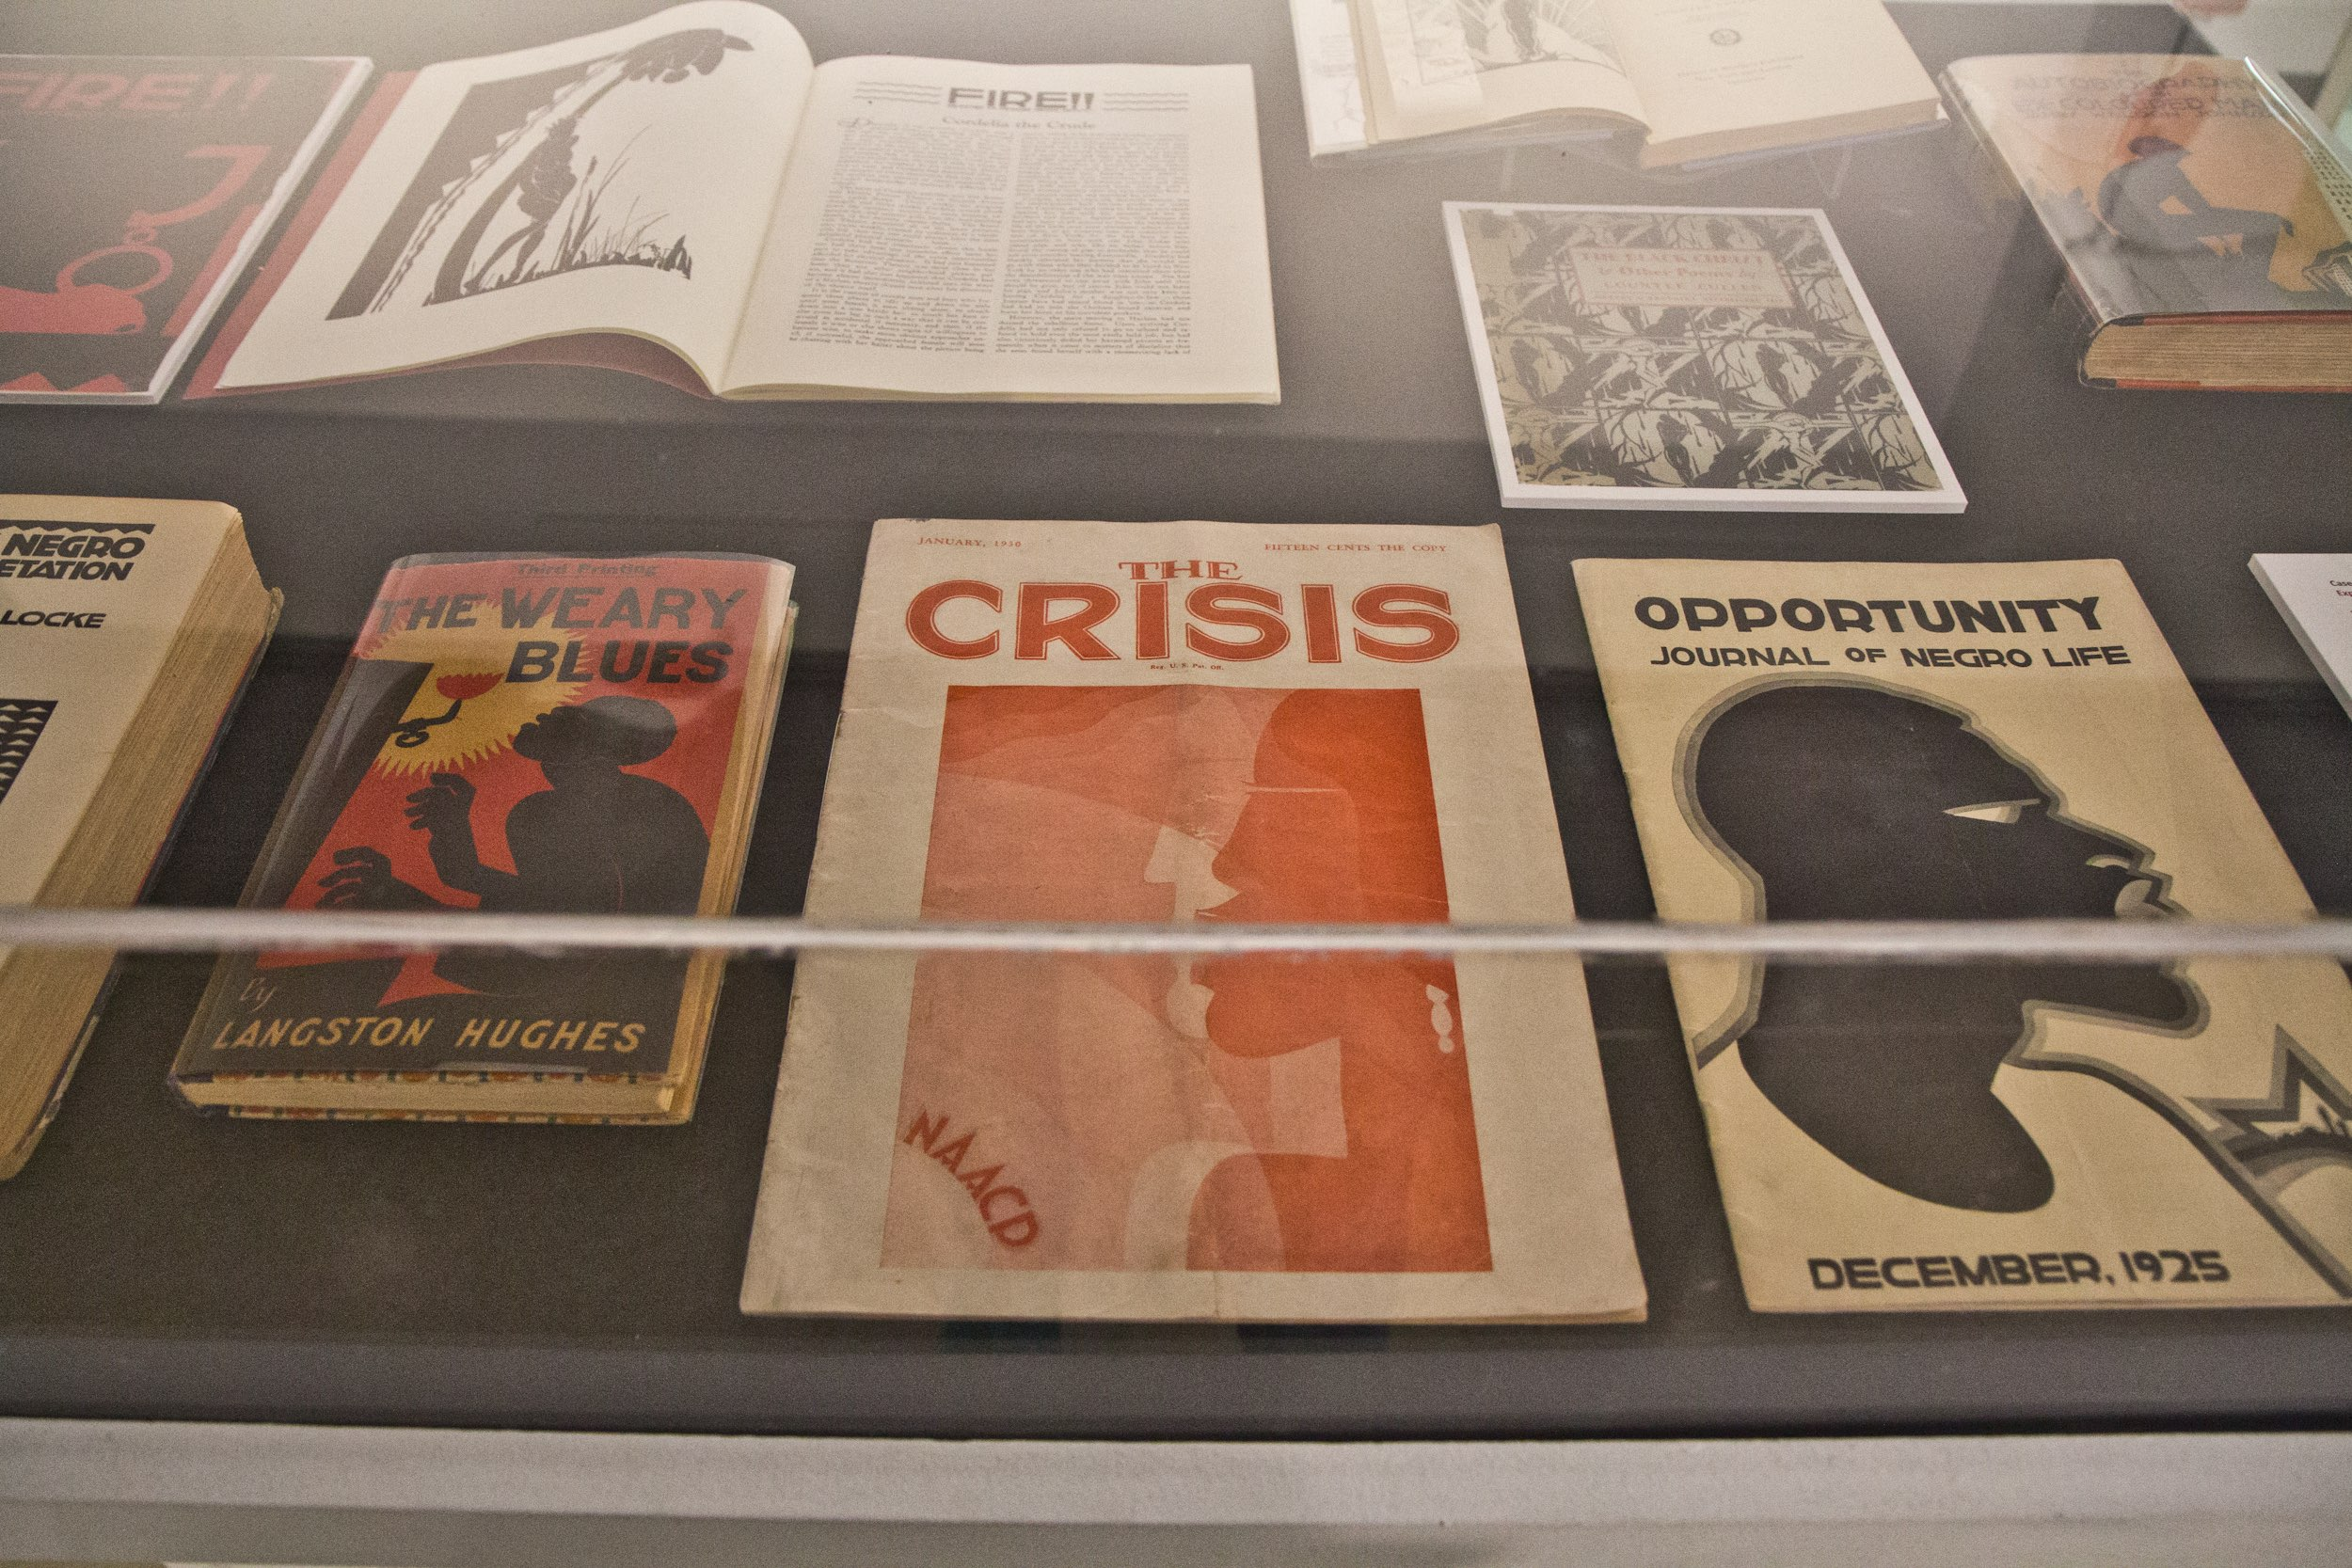 A display case at the African American Museum in Philadelphia shows various published items